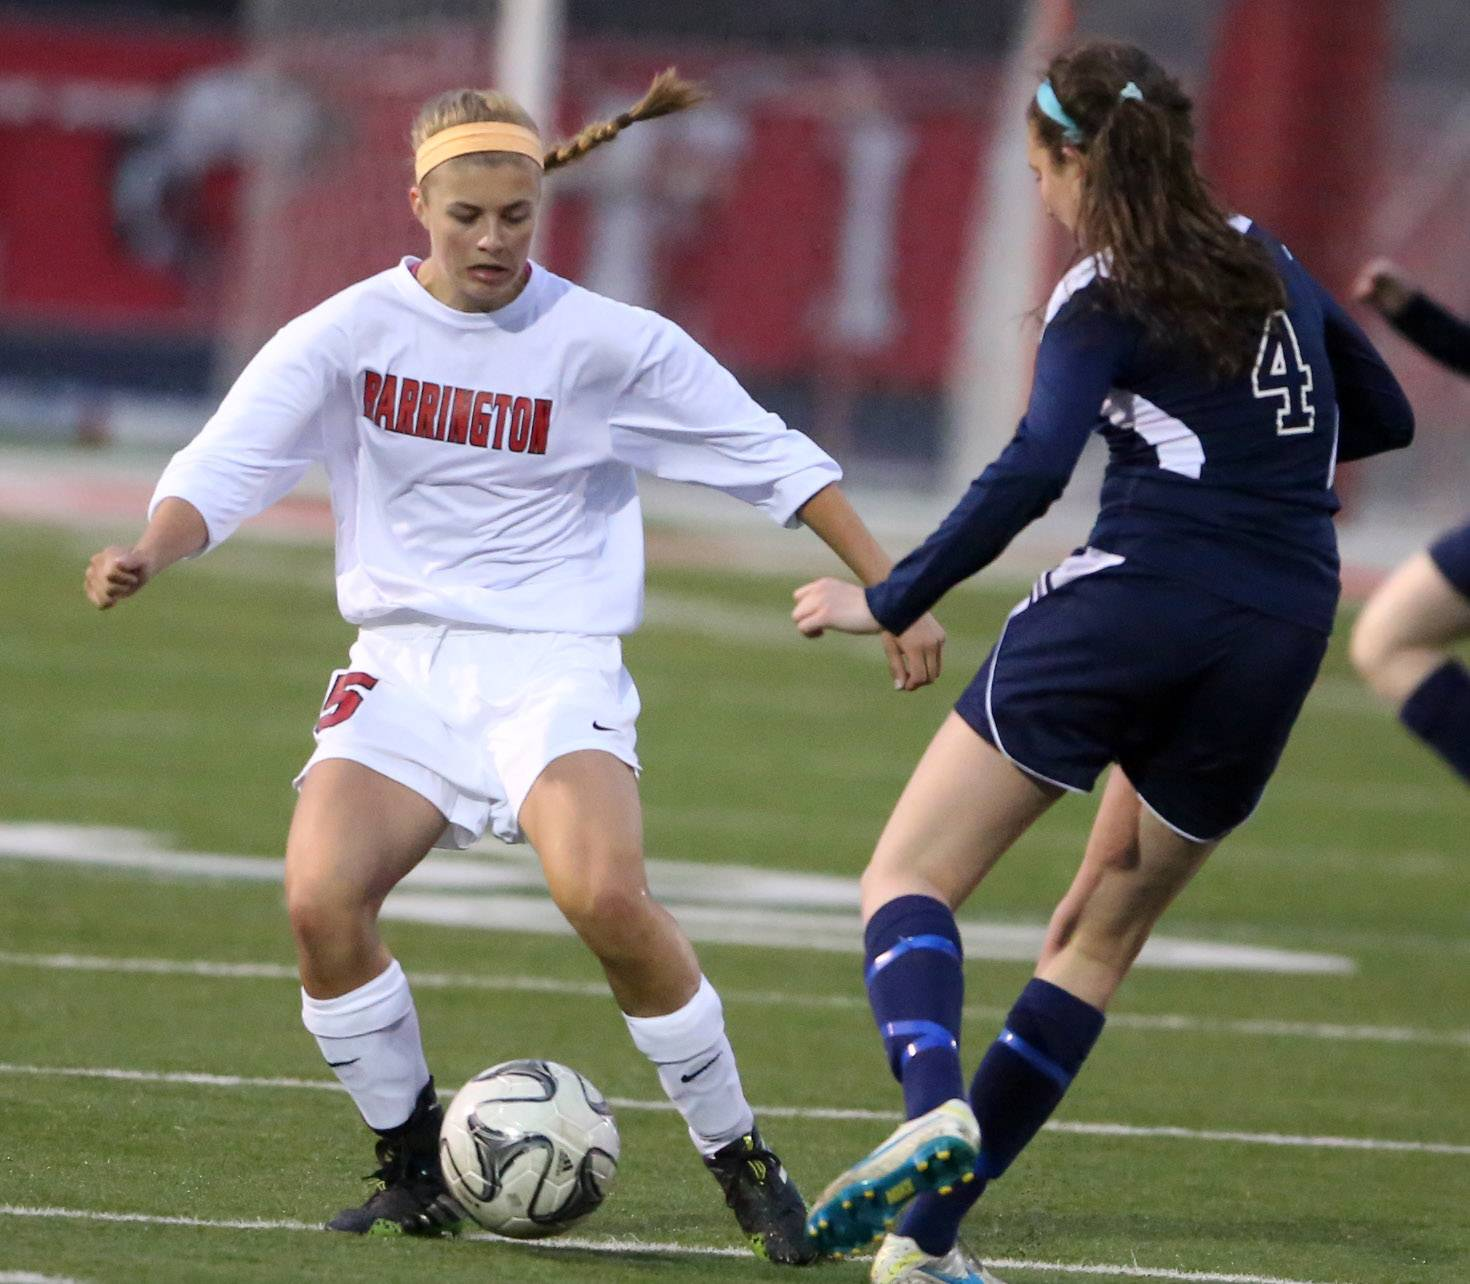 Barrington's Jackie Batliner, left, looks to dibble past St. Viator's Susie Moynihan on Thursday in Barrington.